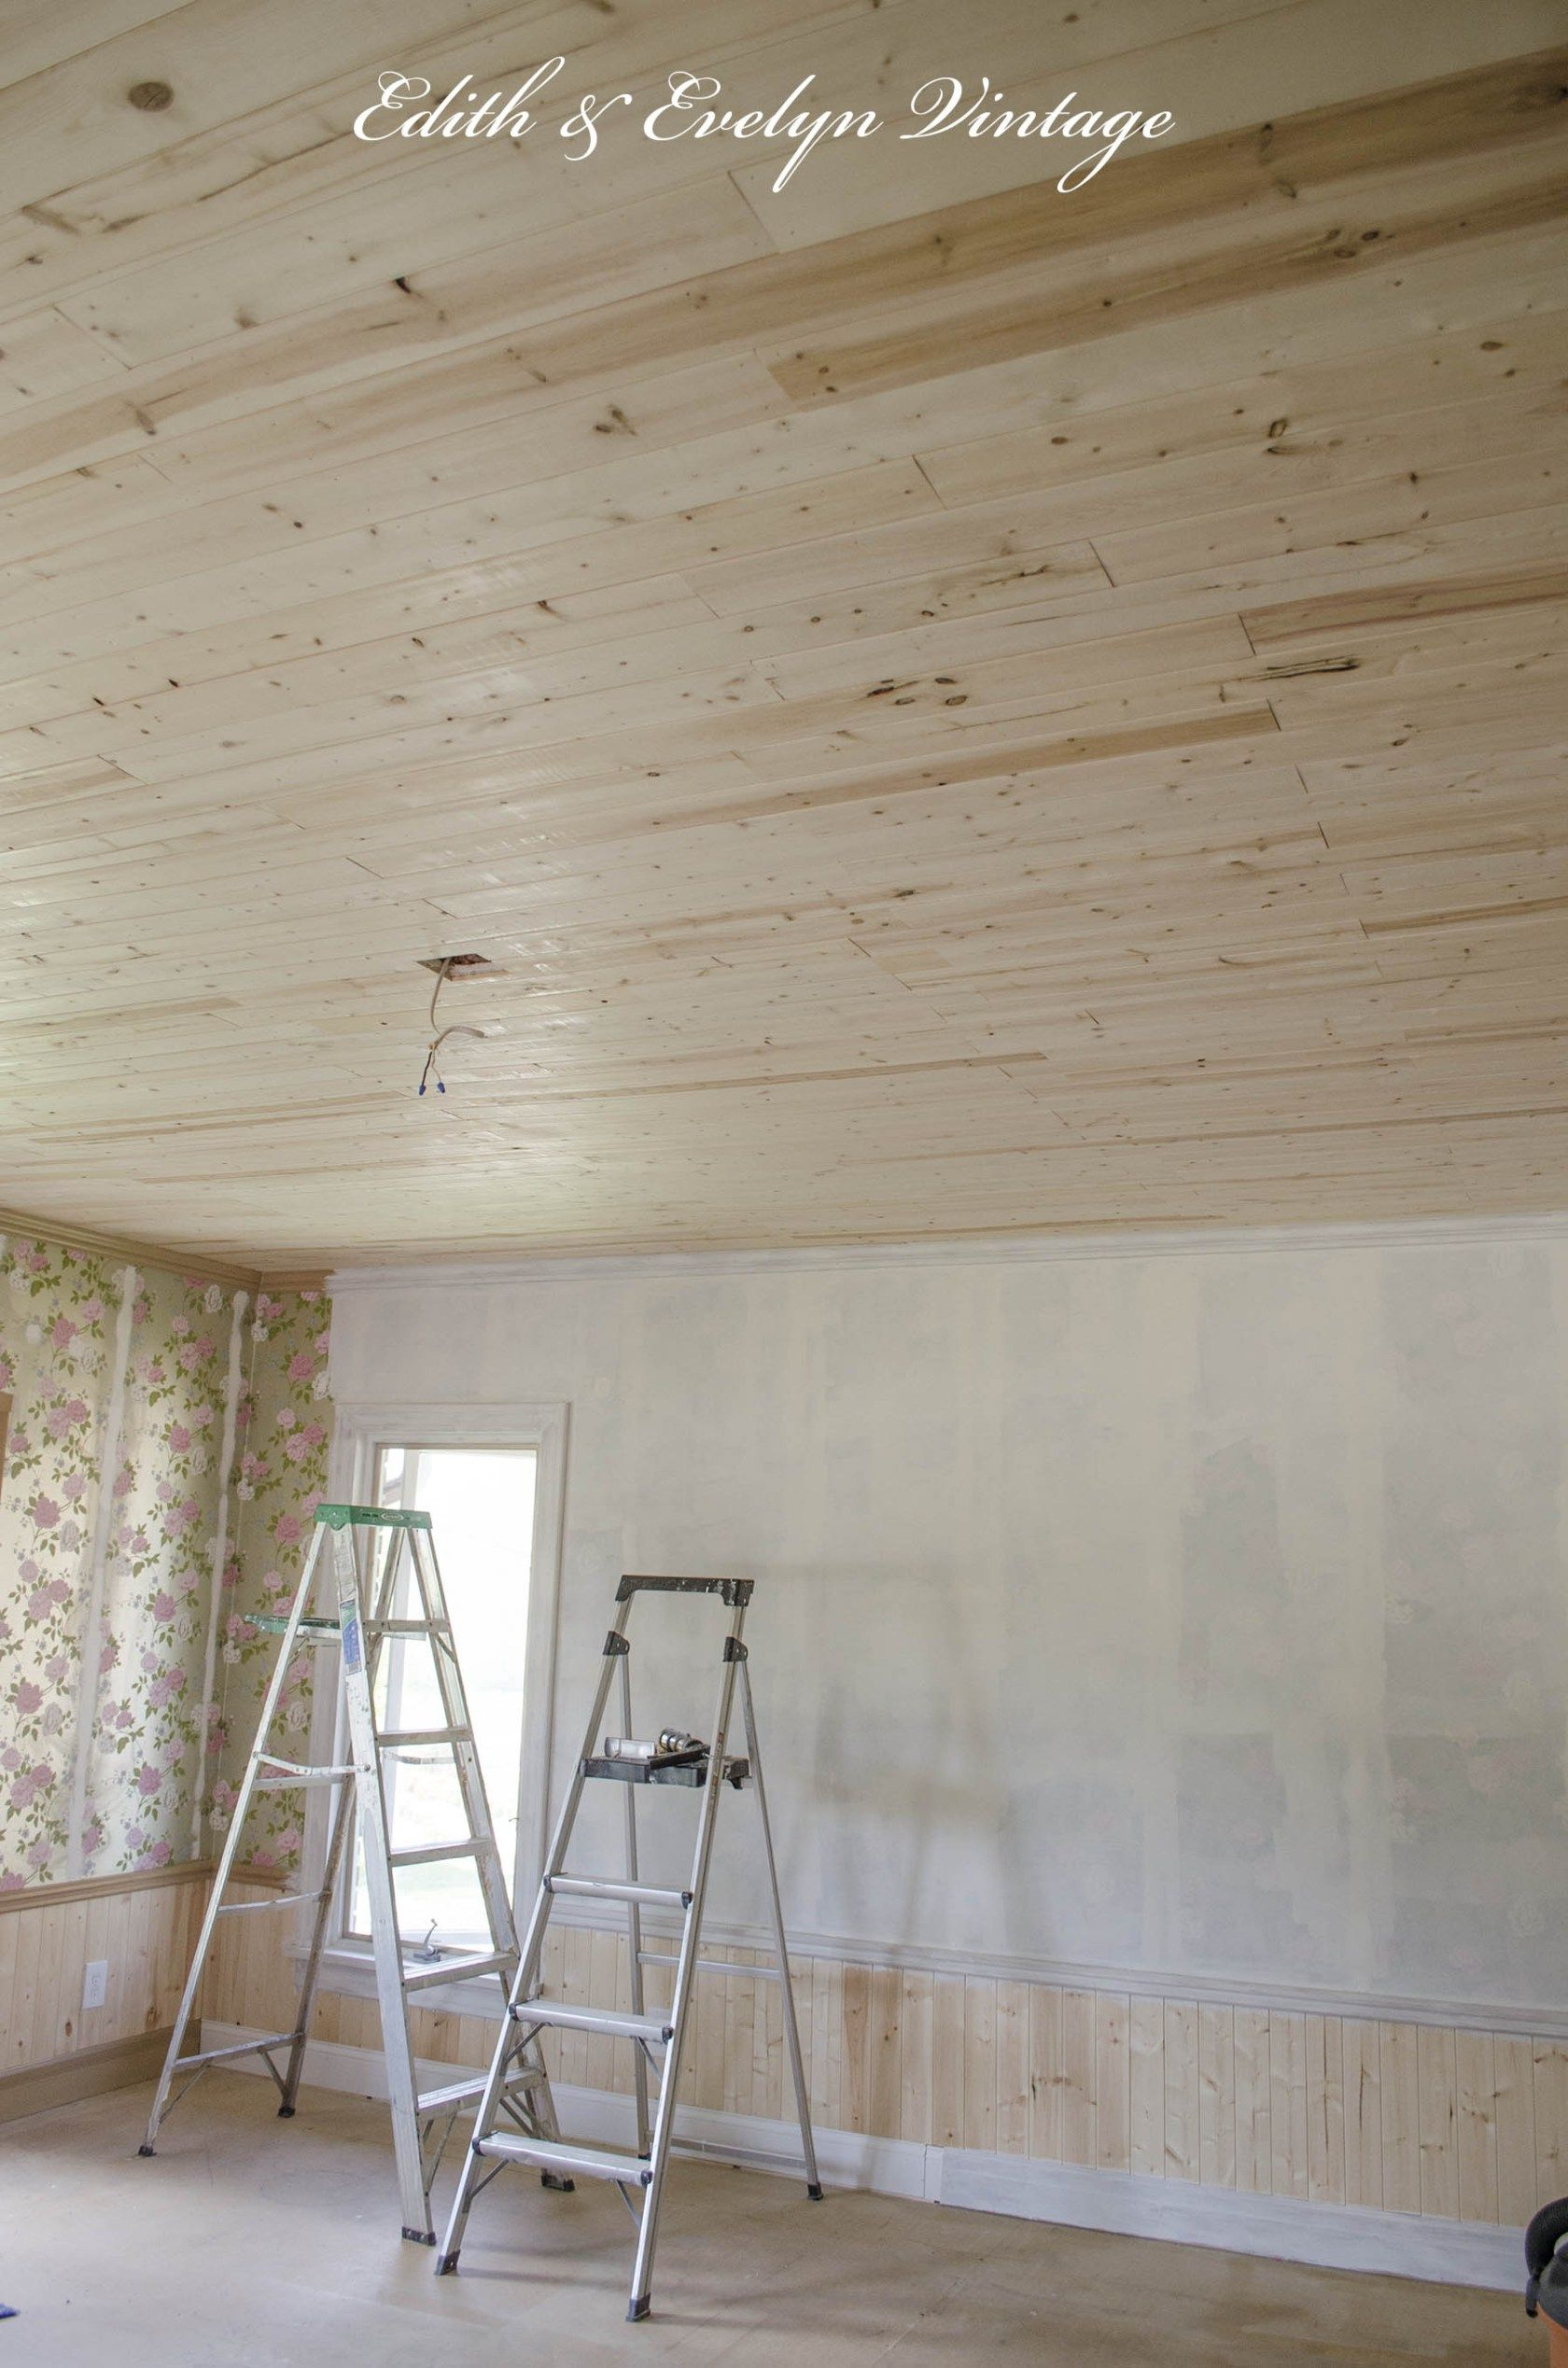 How To Plank A Popcorn Ceiling The Easy Way With Wood